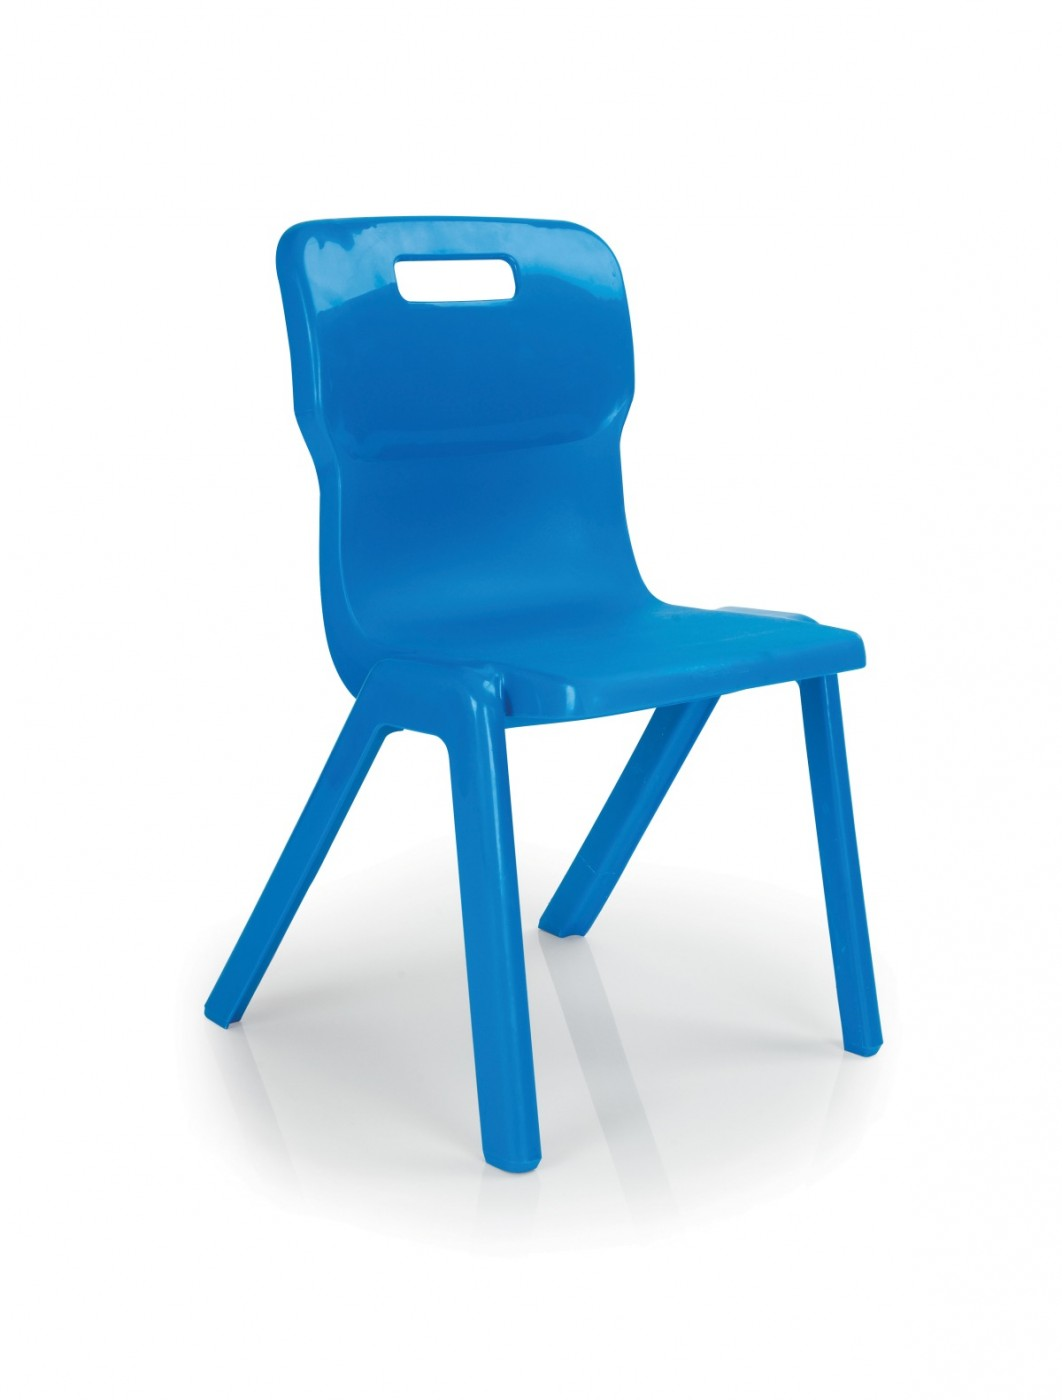 Teacher Chair One Piece Chair T1 121 Office Furniture